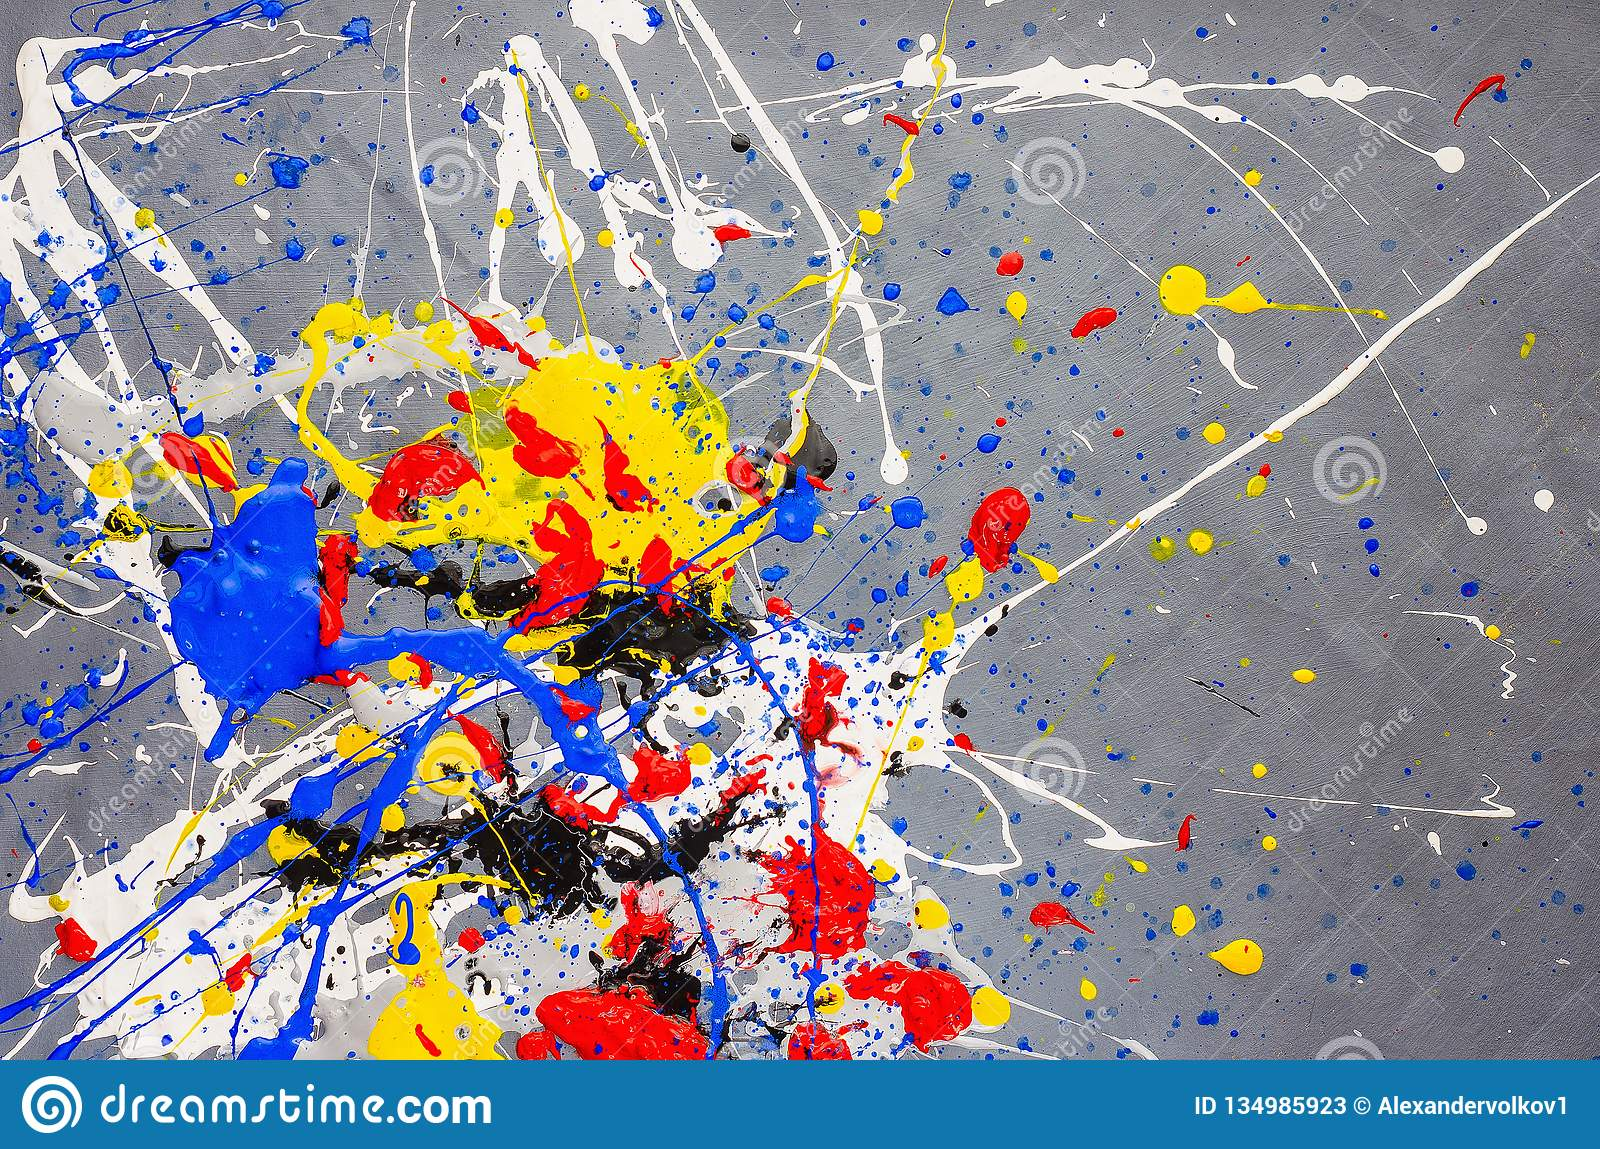 Multicolor paint dripping on background. Stylish acrylic liquid layered colorful painting concept